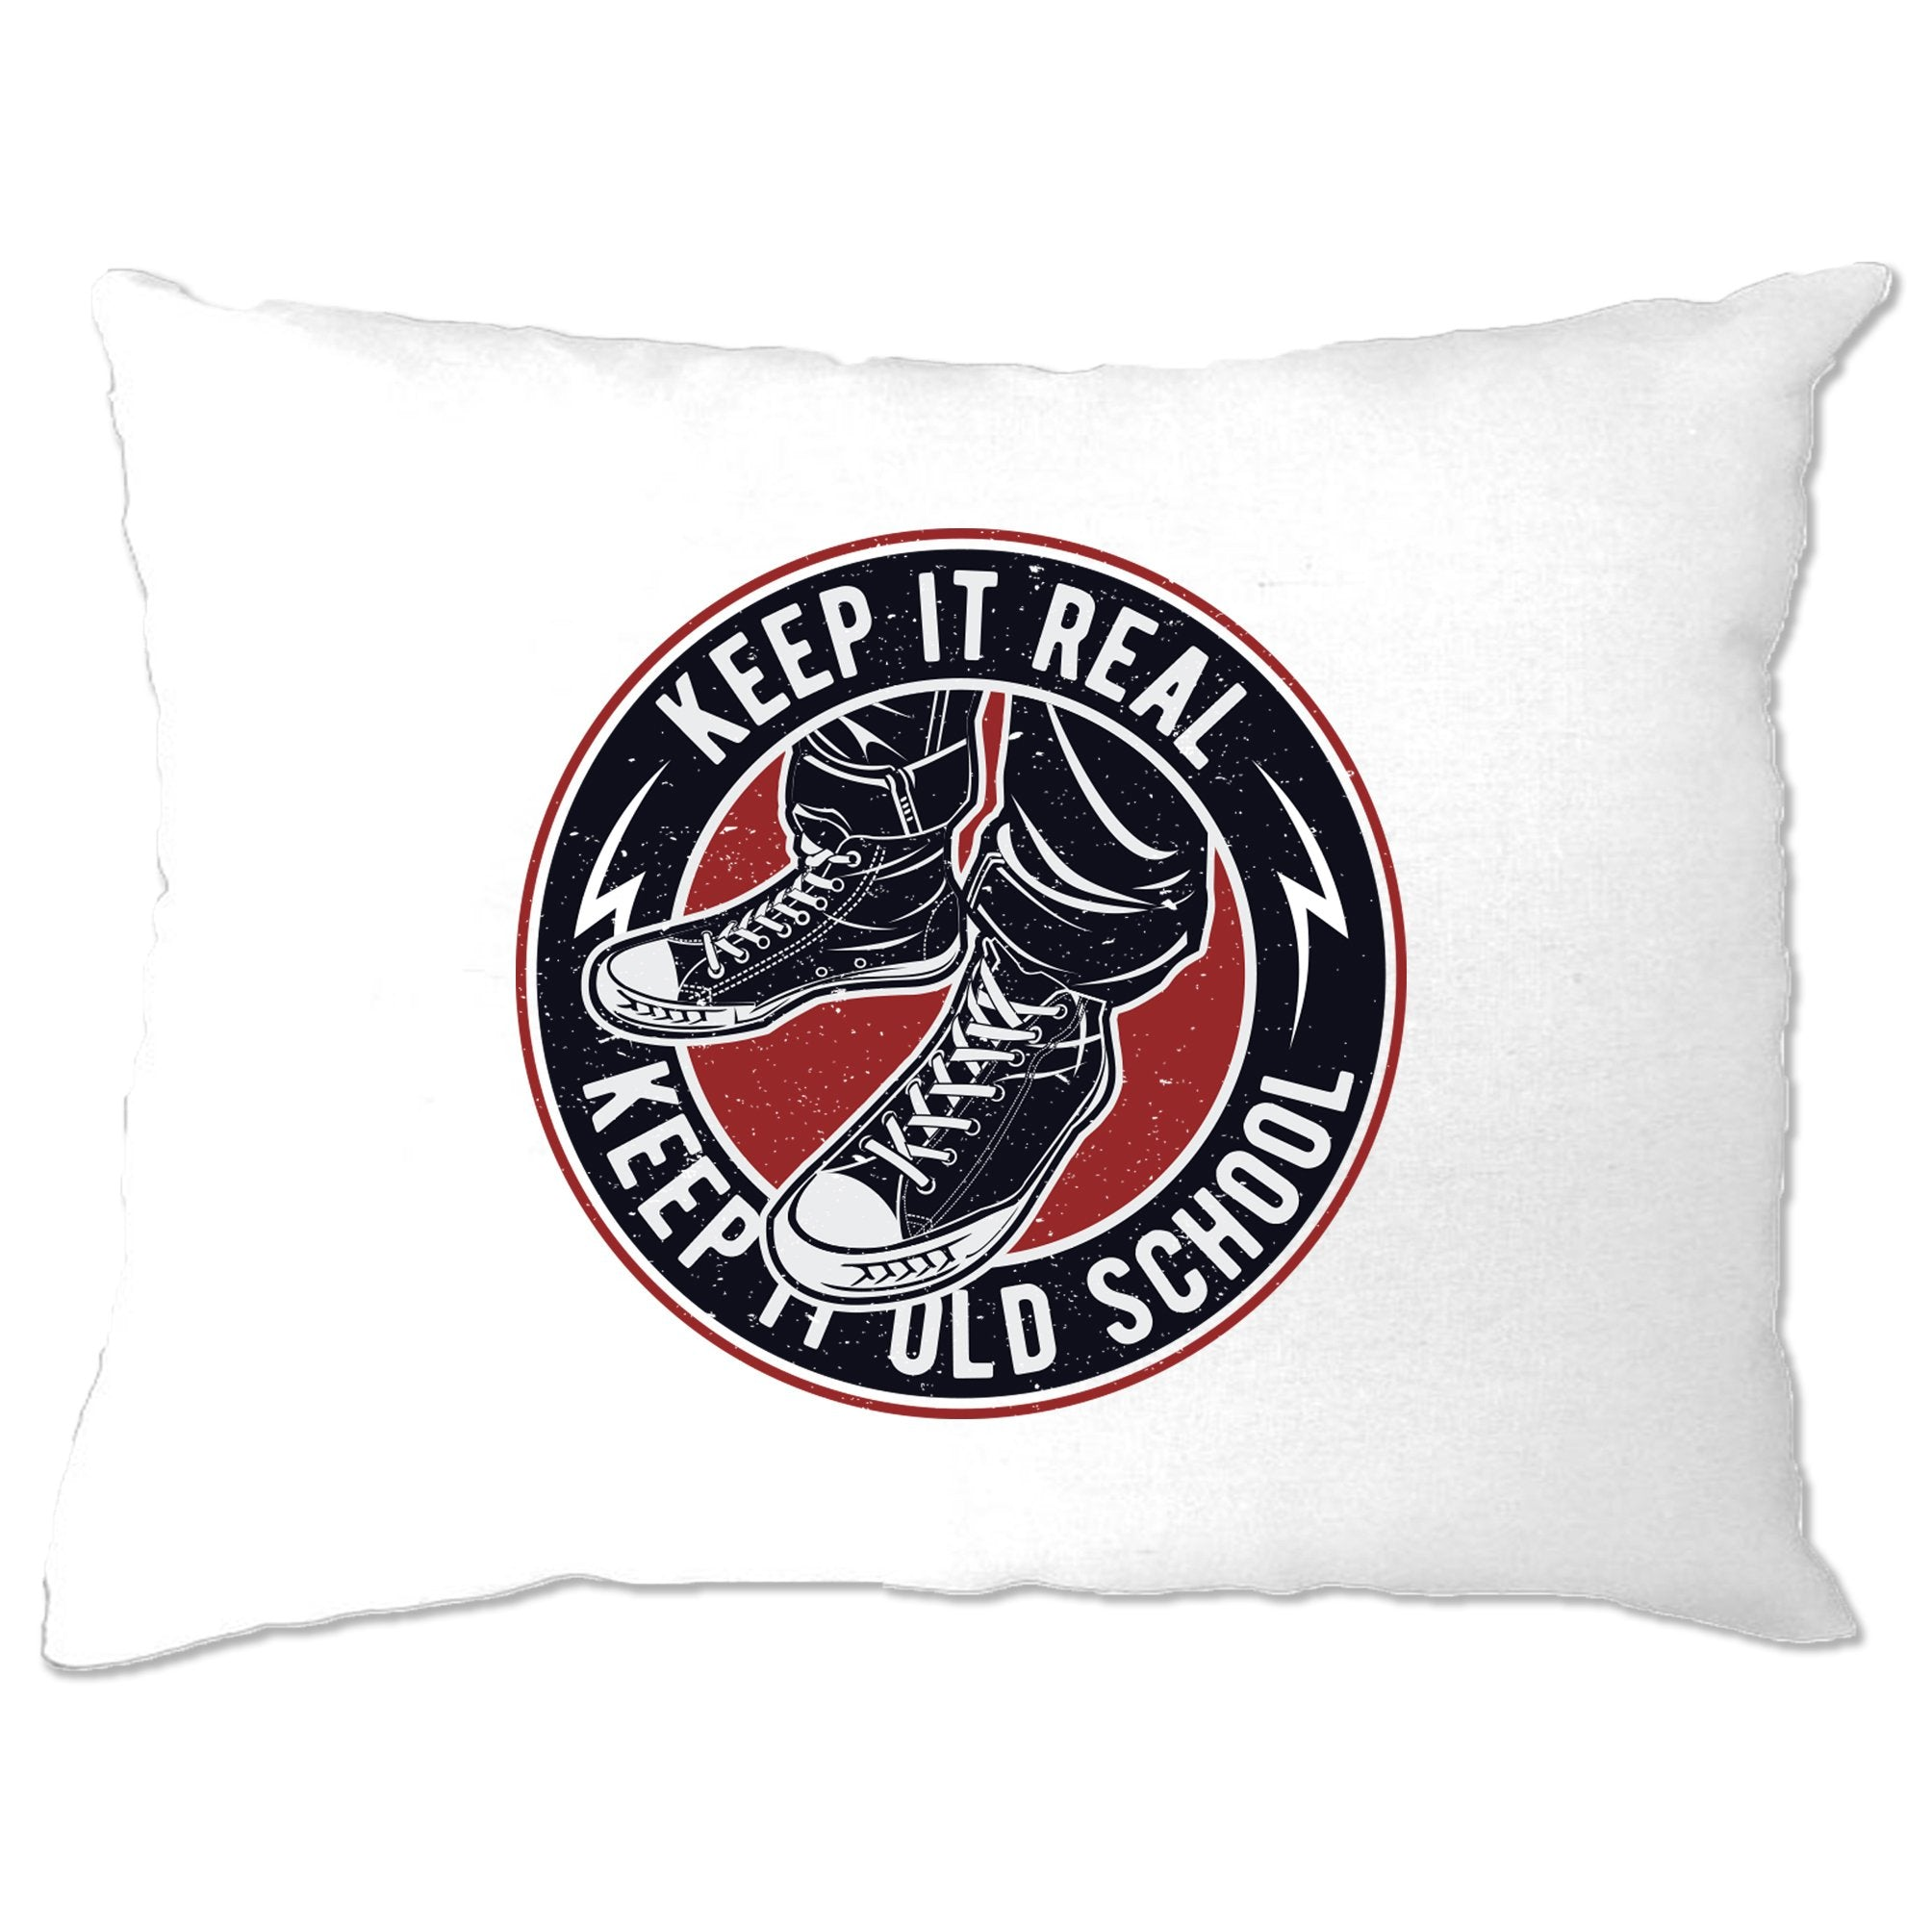 Retro Pillow Case Keep It Real, Keep It Old School Logo